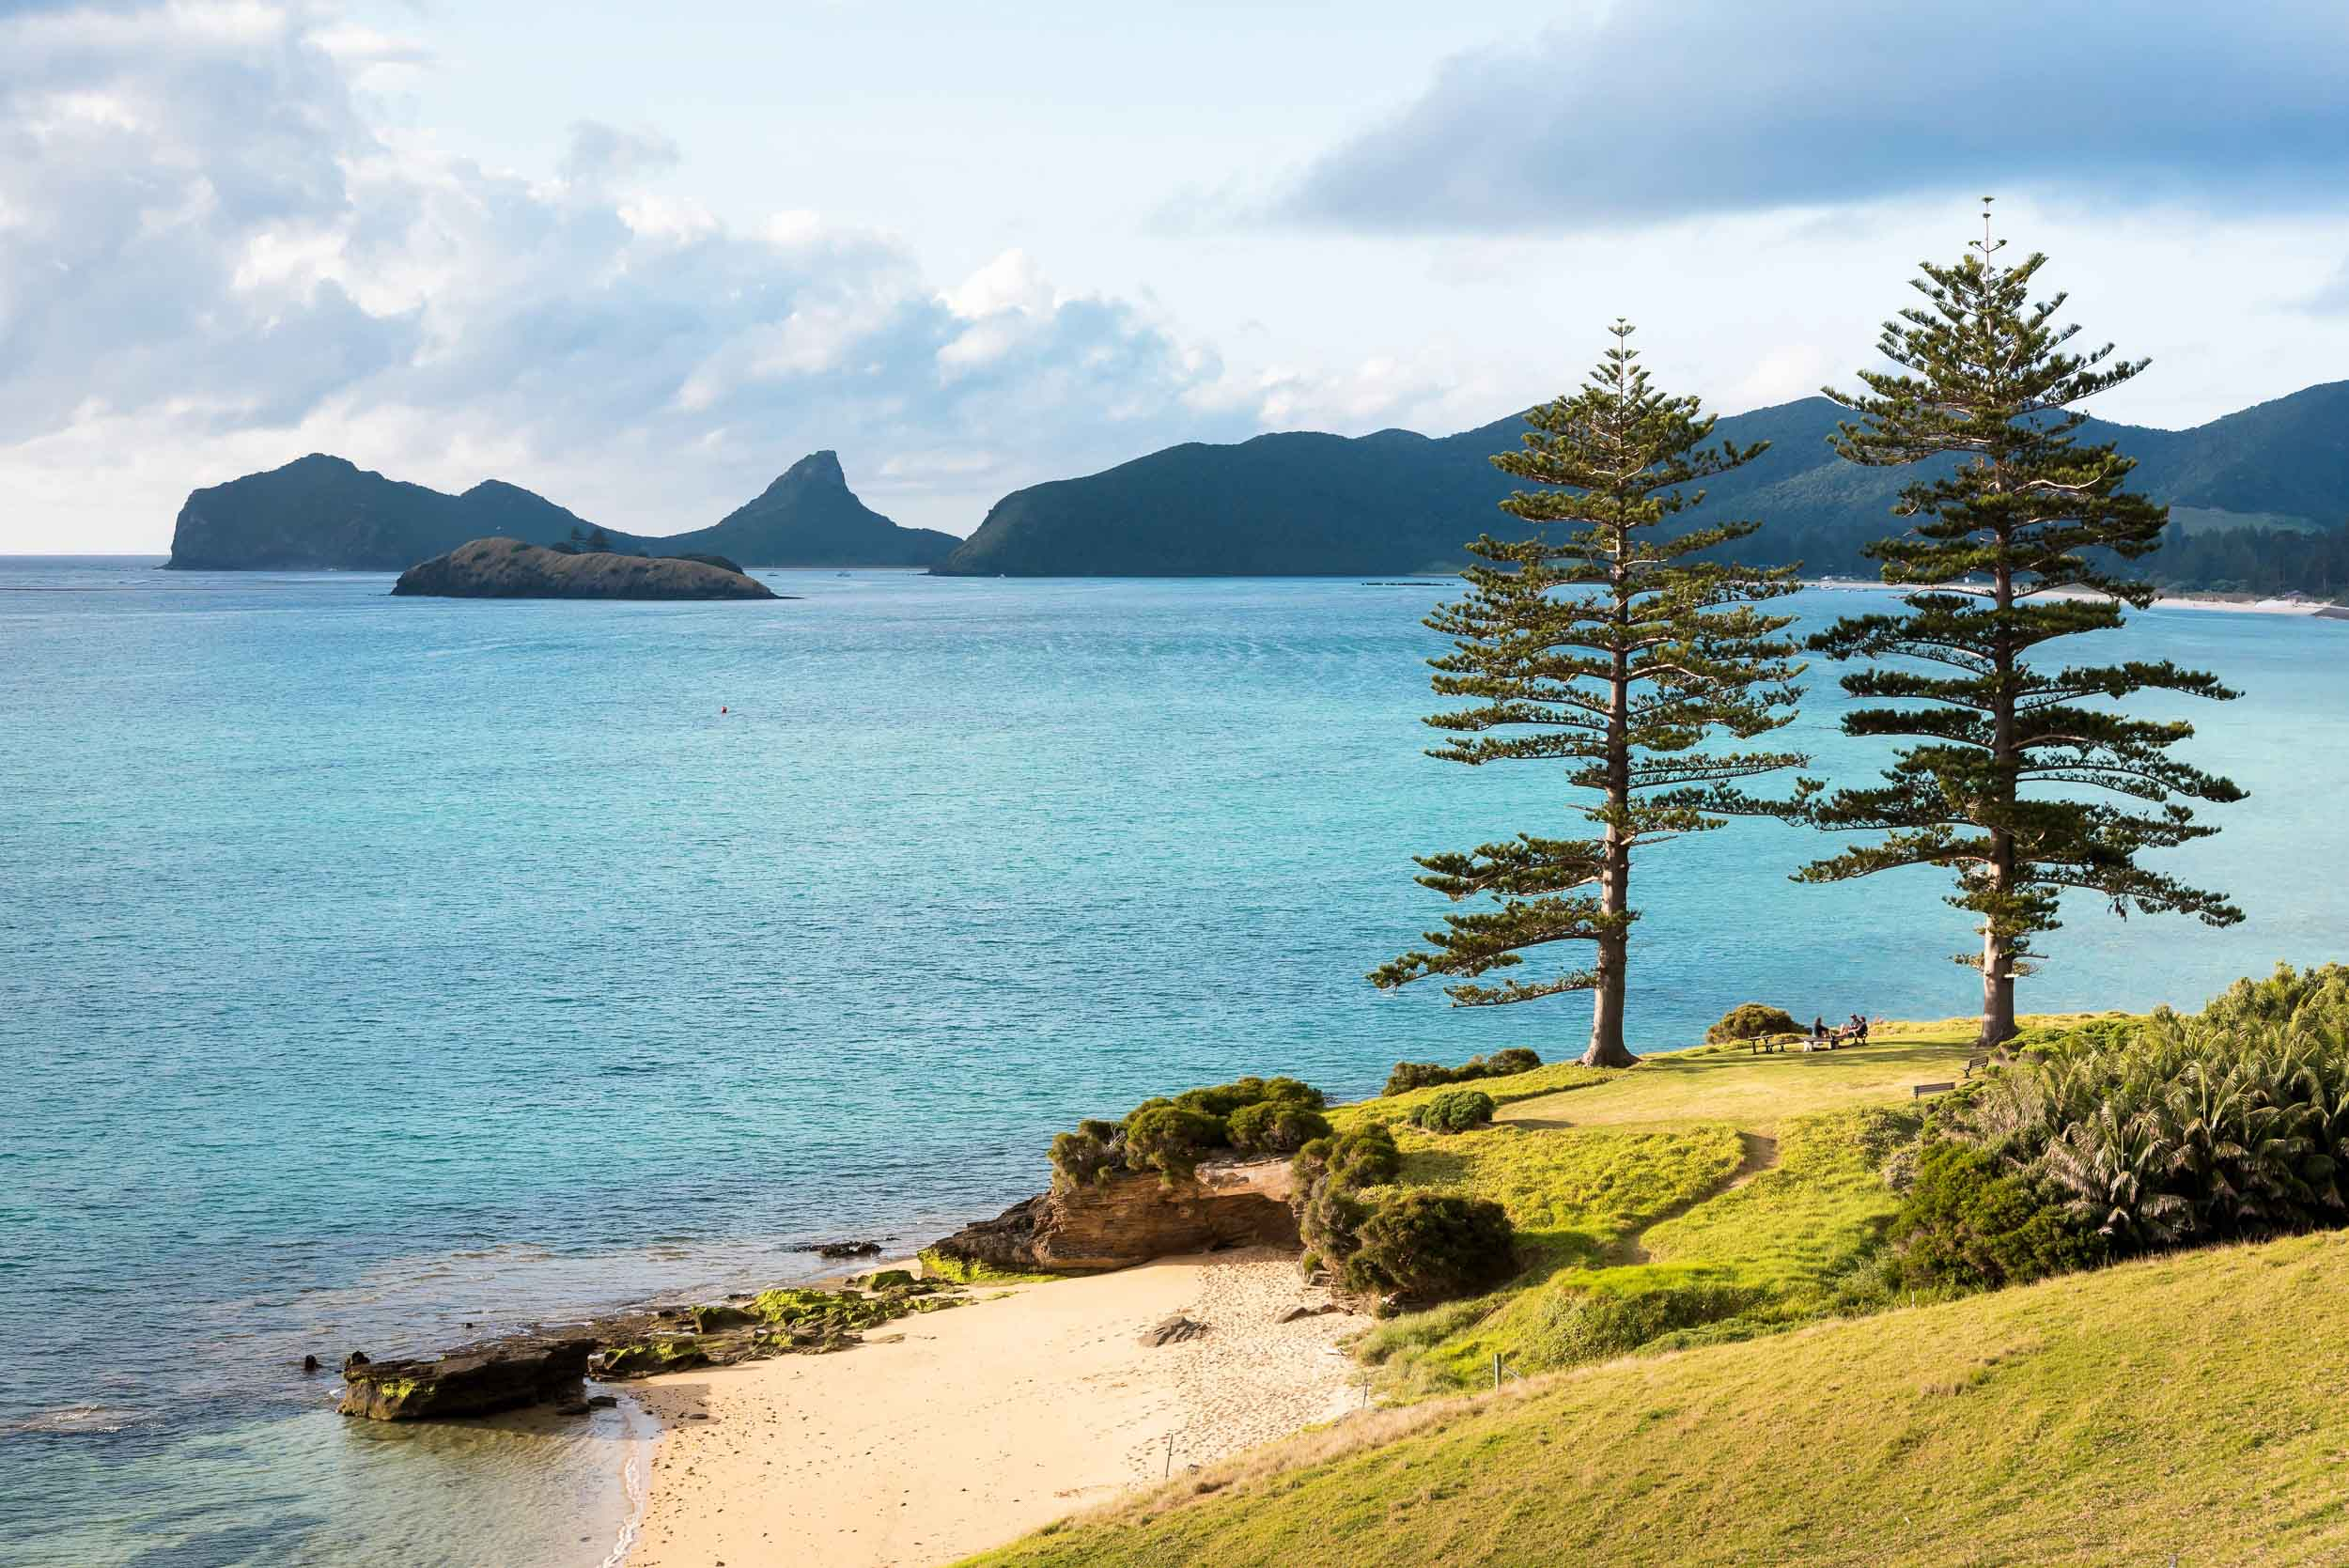 Beaches of Lord Howe Island